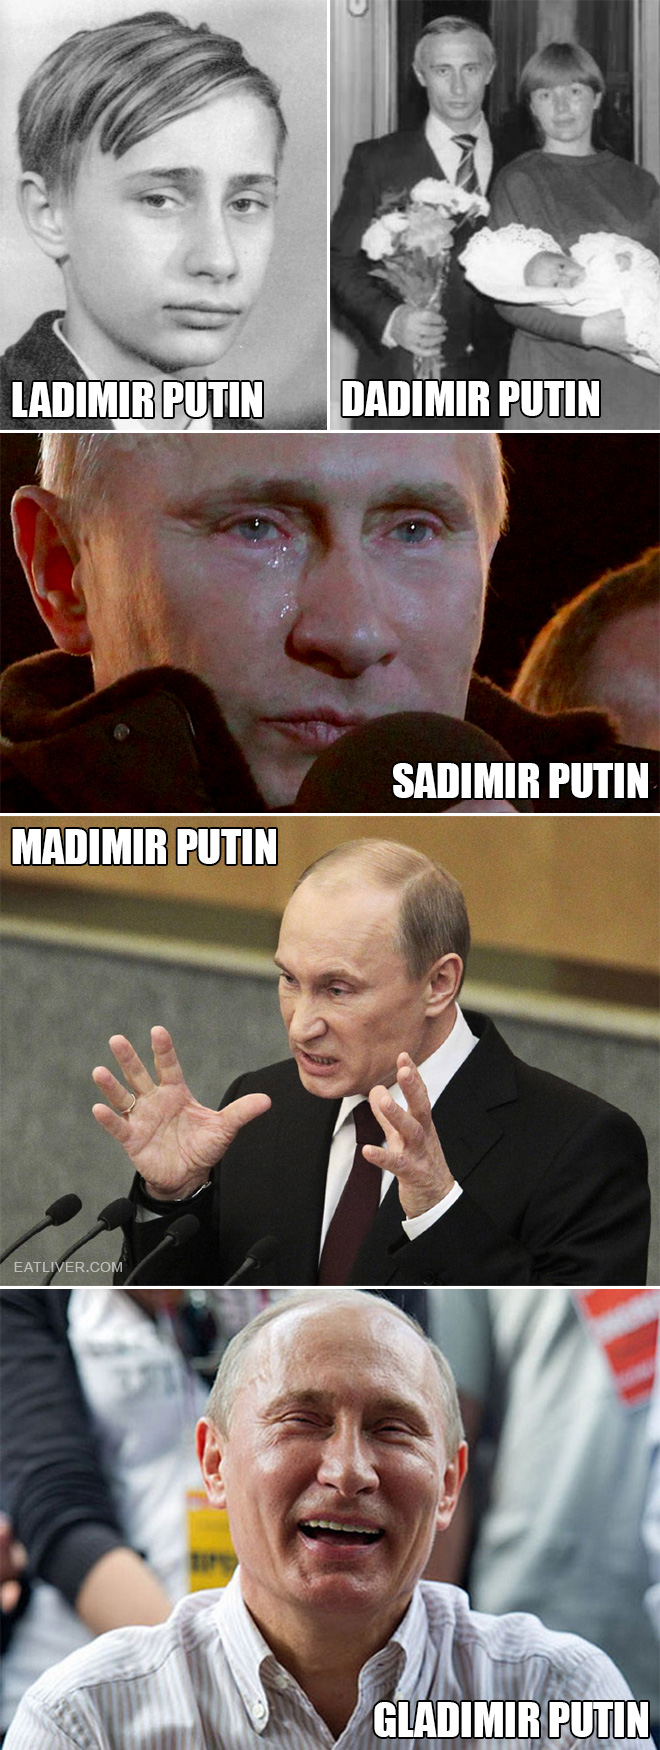 Not all Putins are the same. Have you met them all?